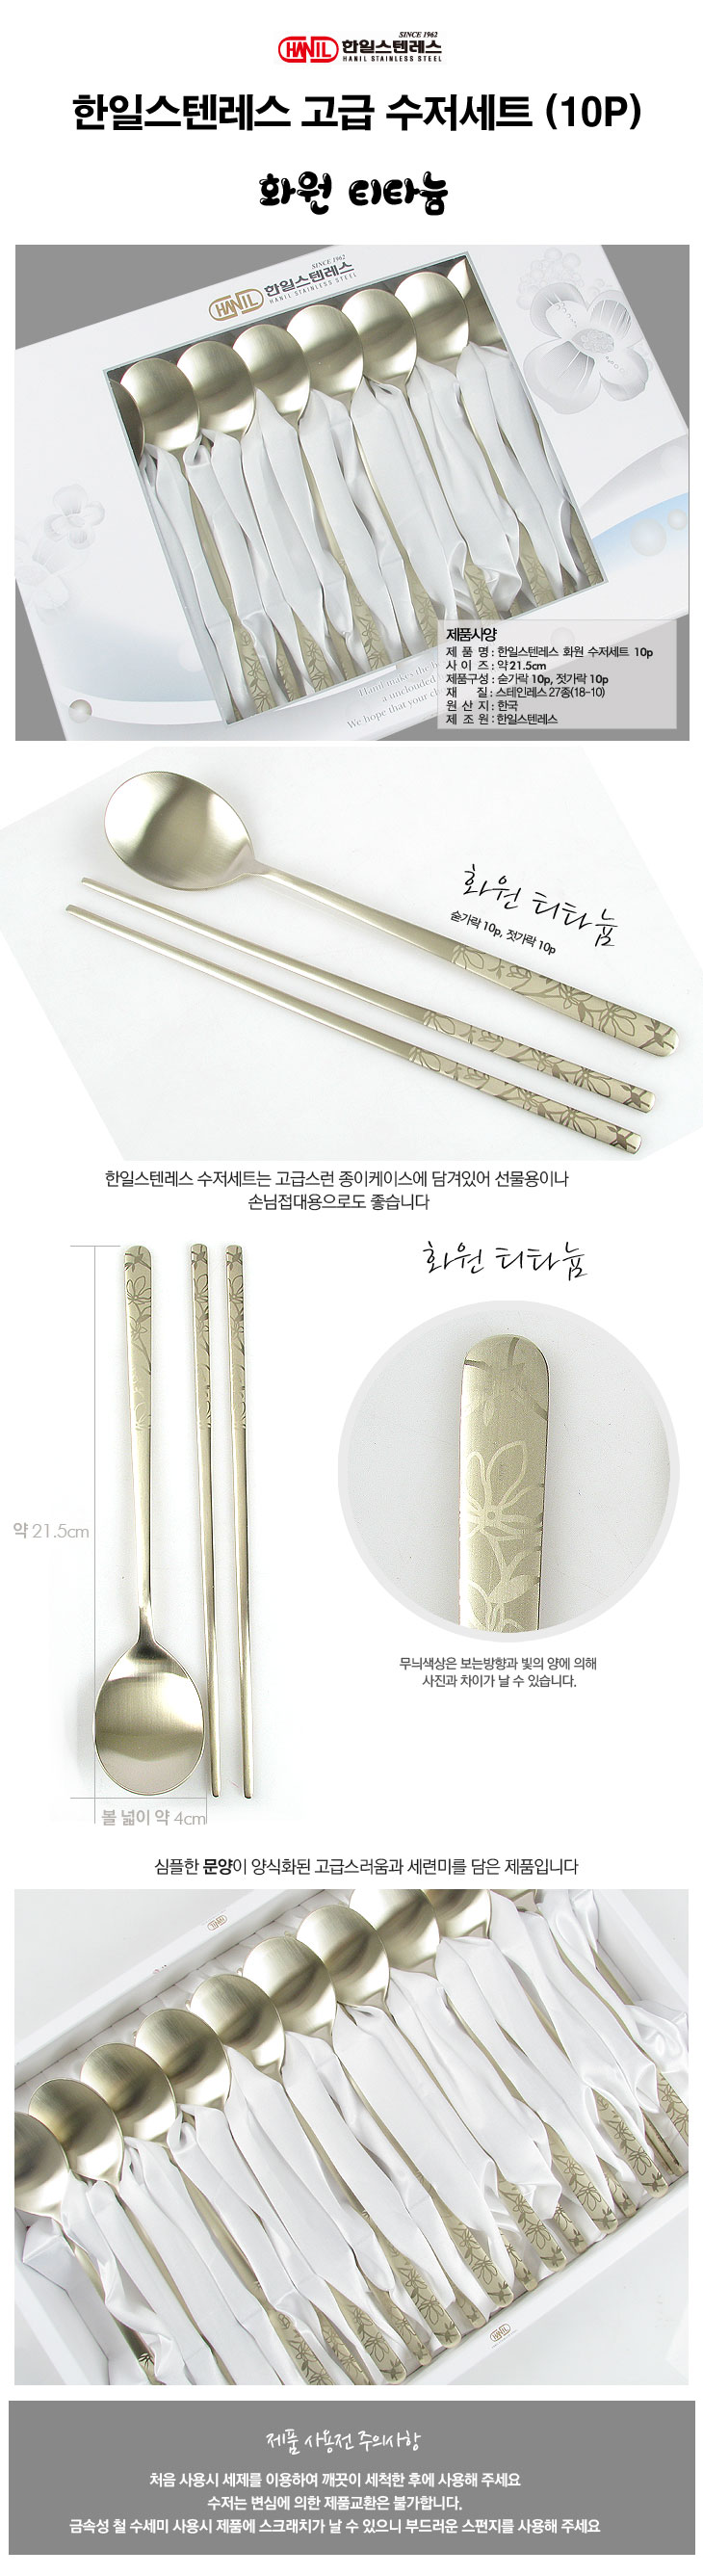 [ HanilStainless ] Titanium Stainless Premium Spoon & Chopsticks Set 10P ?Flower Garden